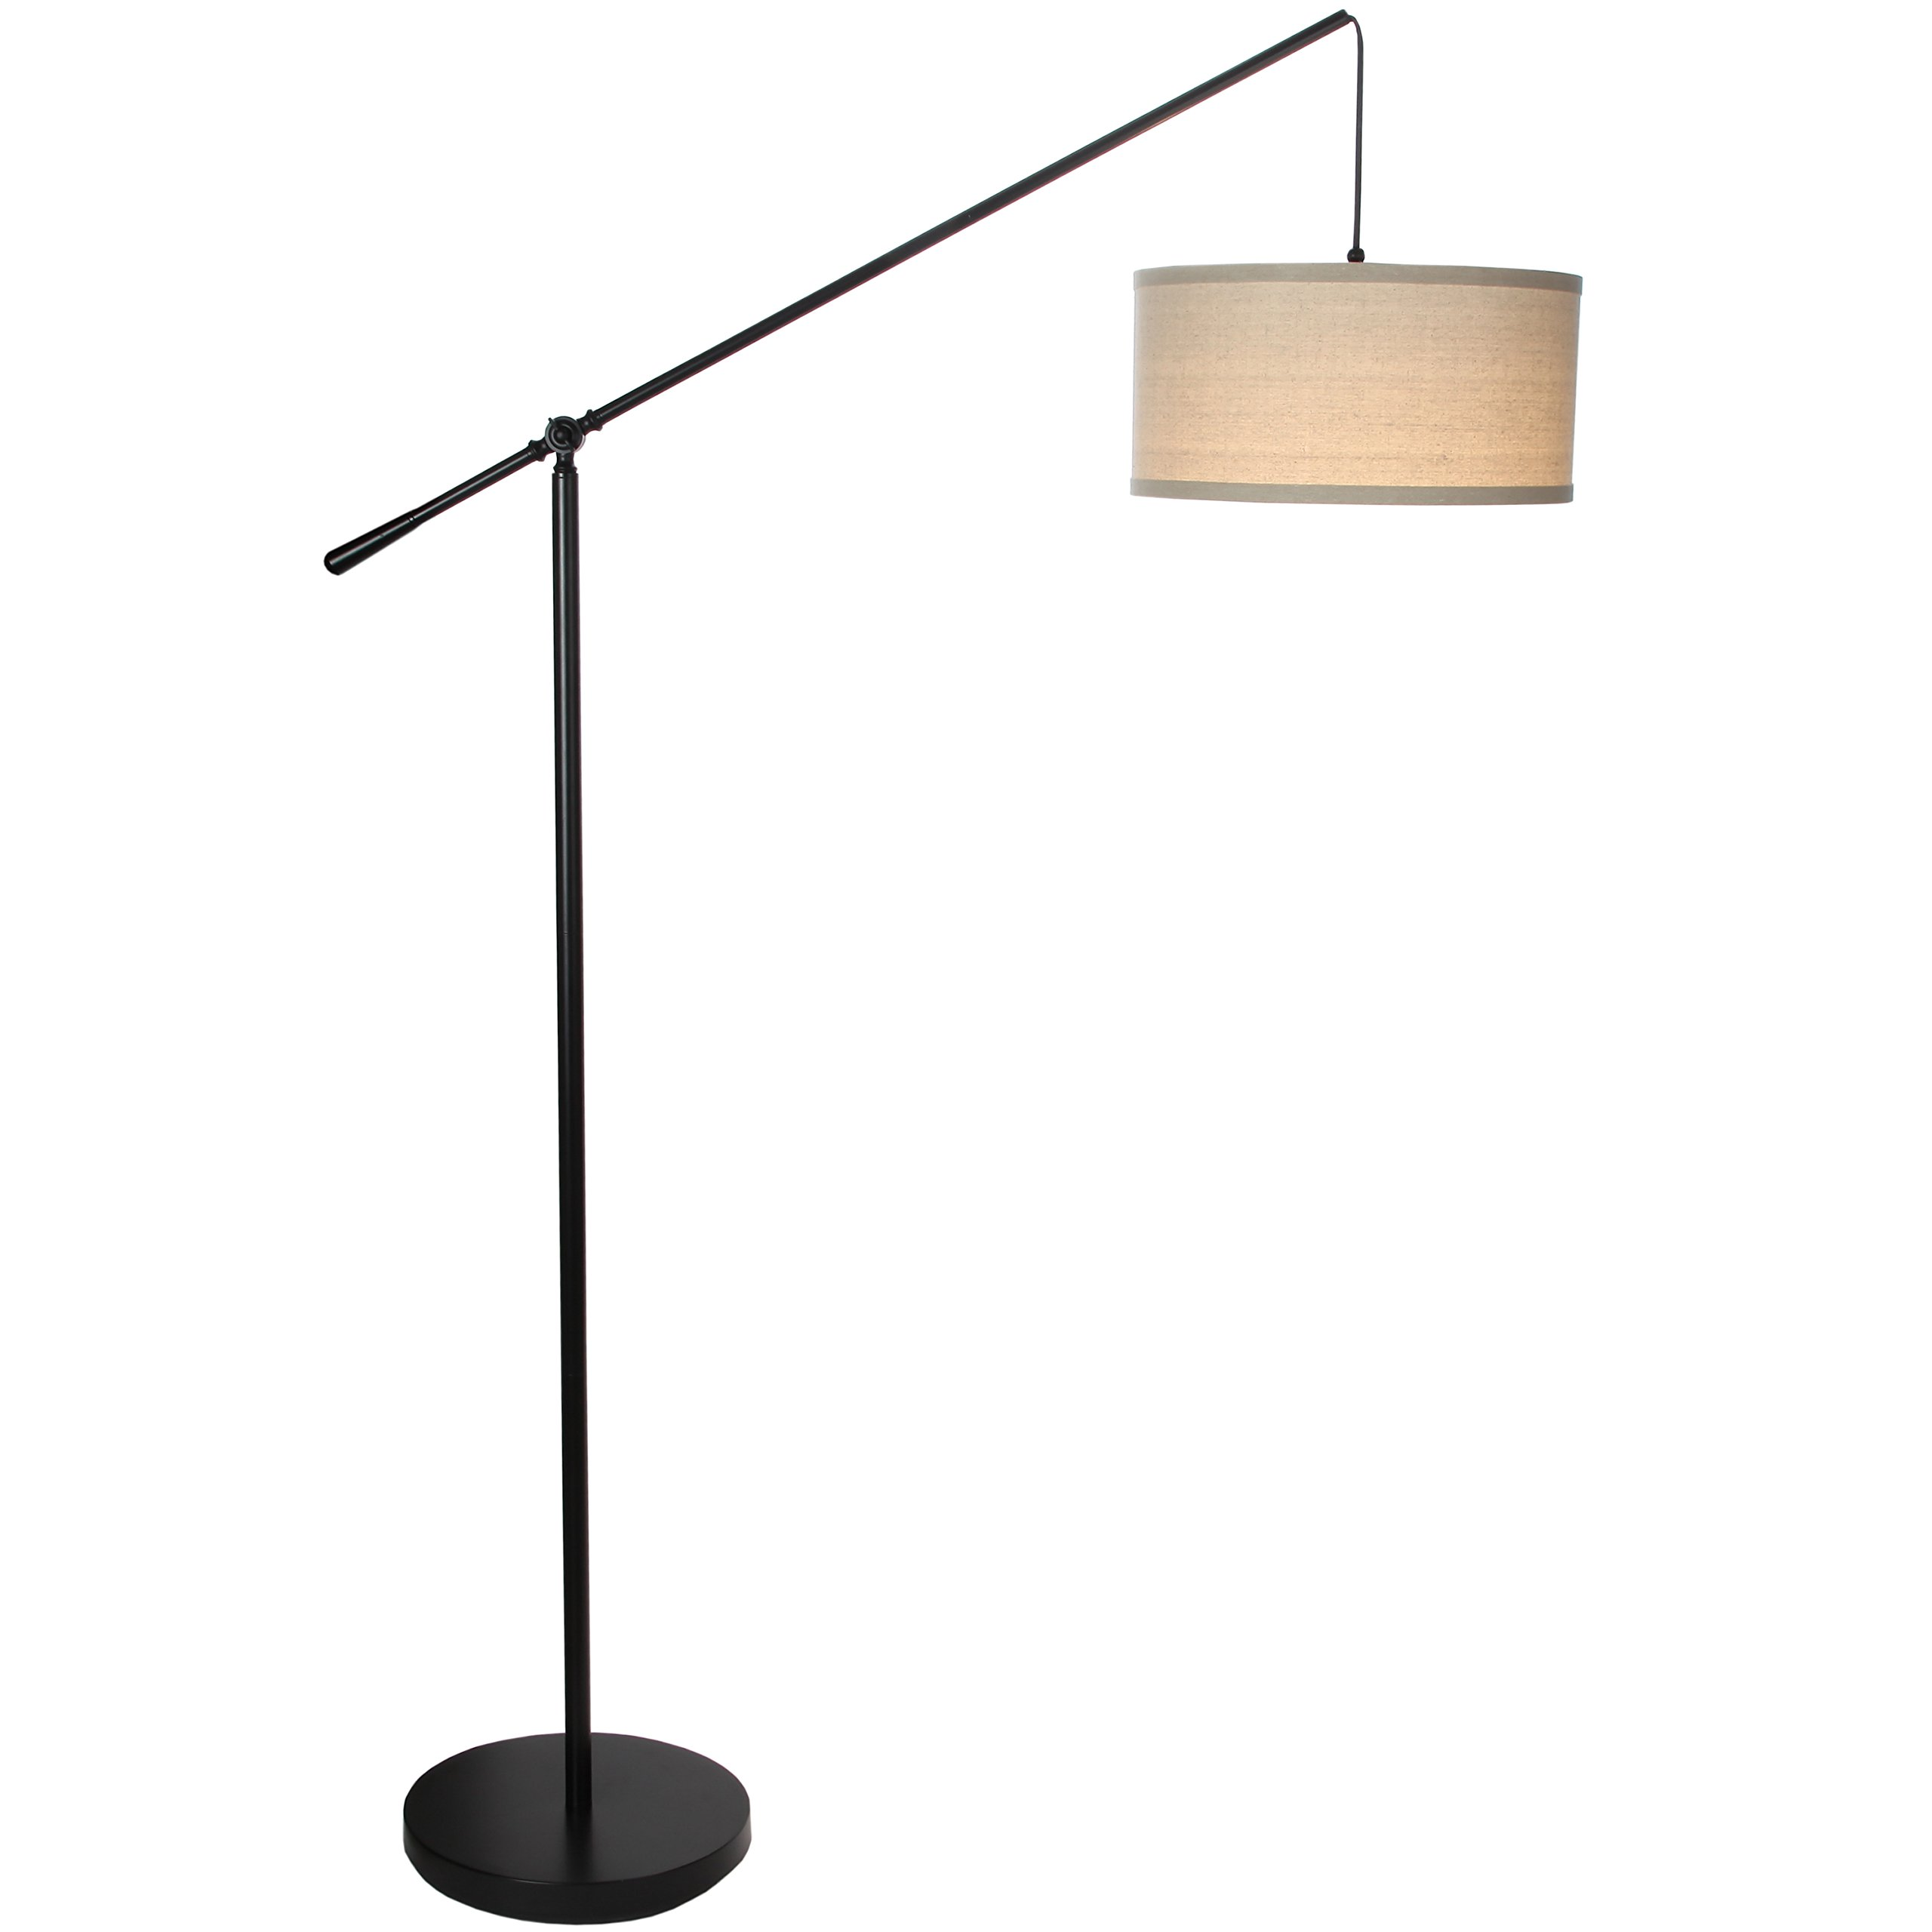 Brightech Hudson 2 - Living Room LED Arc Floor Lamp for Behind The Couch - Pole Hanging Light to Stand up Over The Sofa - with LED Bulb- Jet Black by Brightech